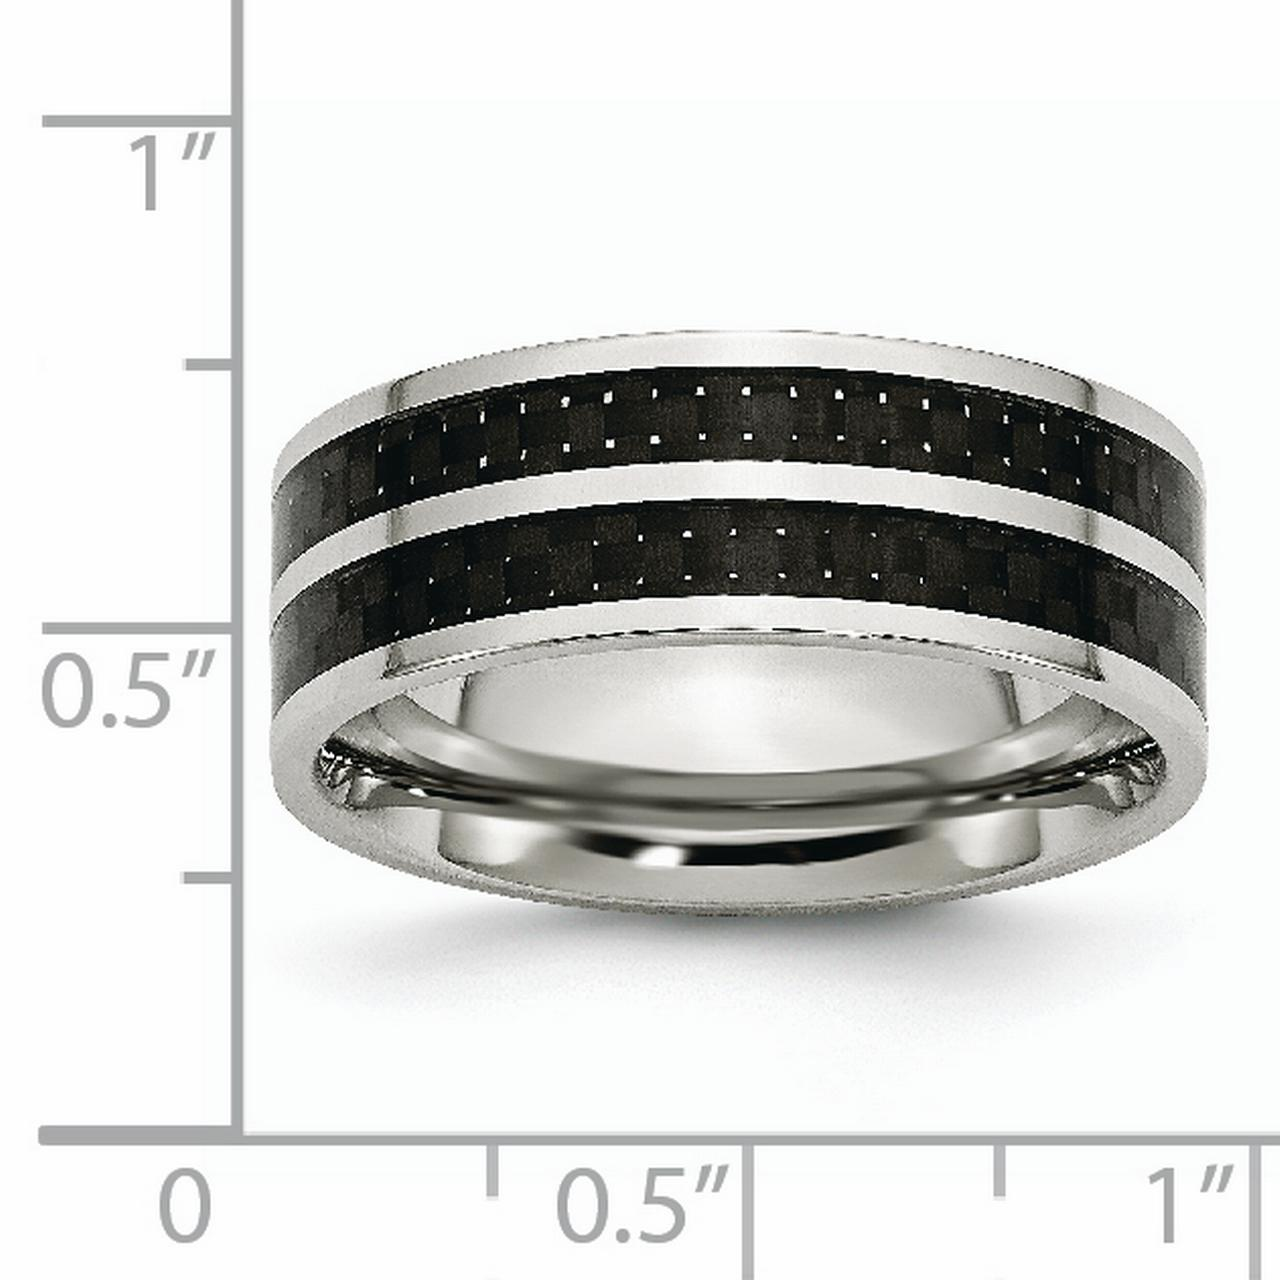 Stainless Steel 8mm Double Row Black Carbon Fiber Inlay Polished Band Ring 7.5 Size - image 4 de 6